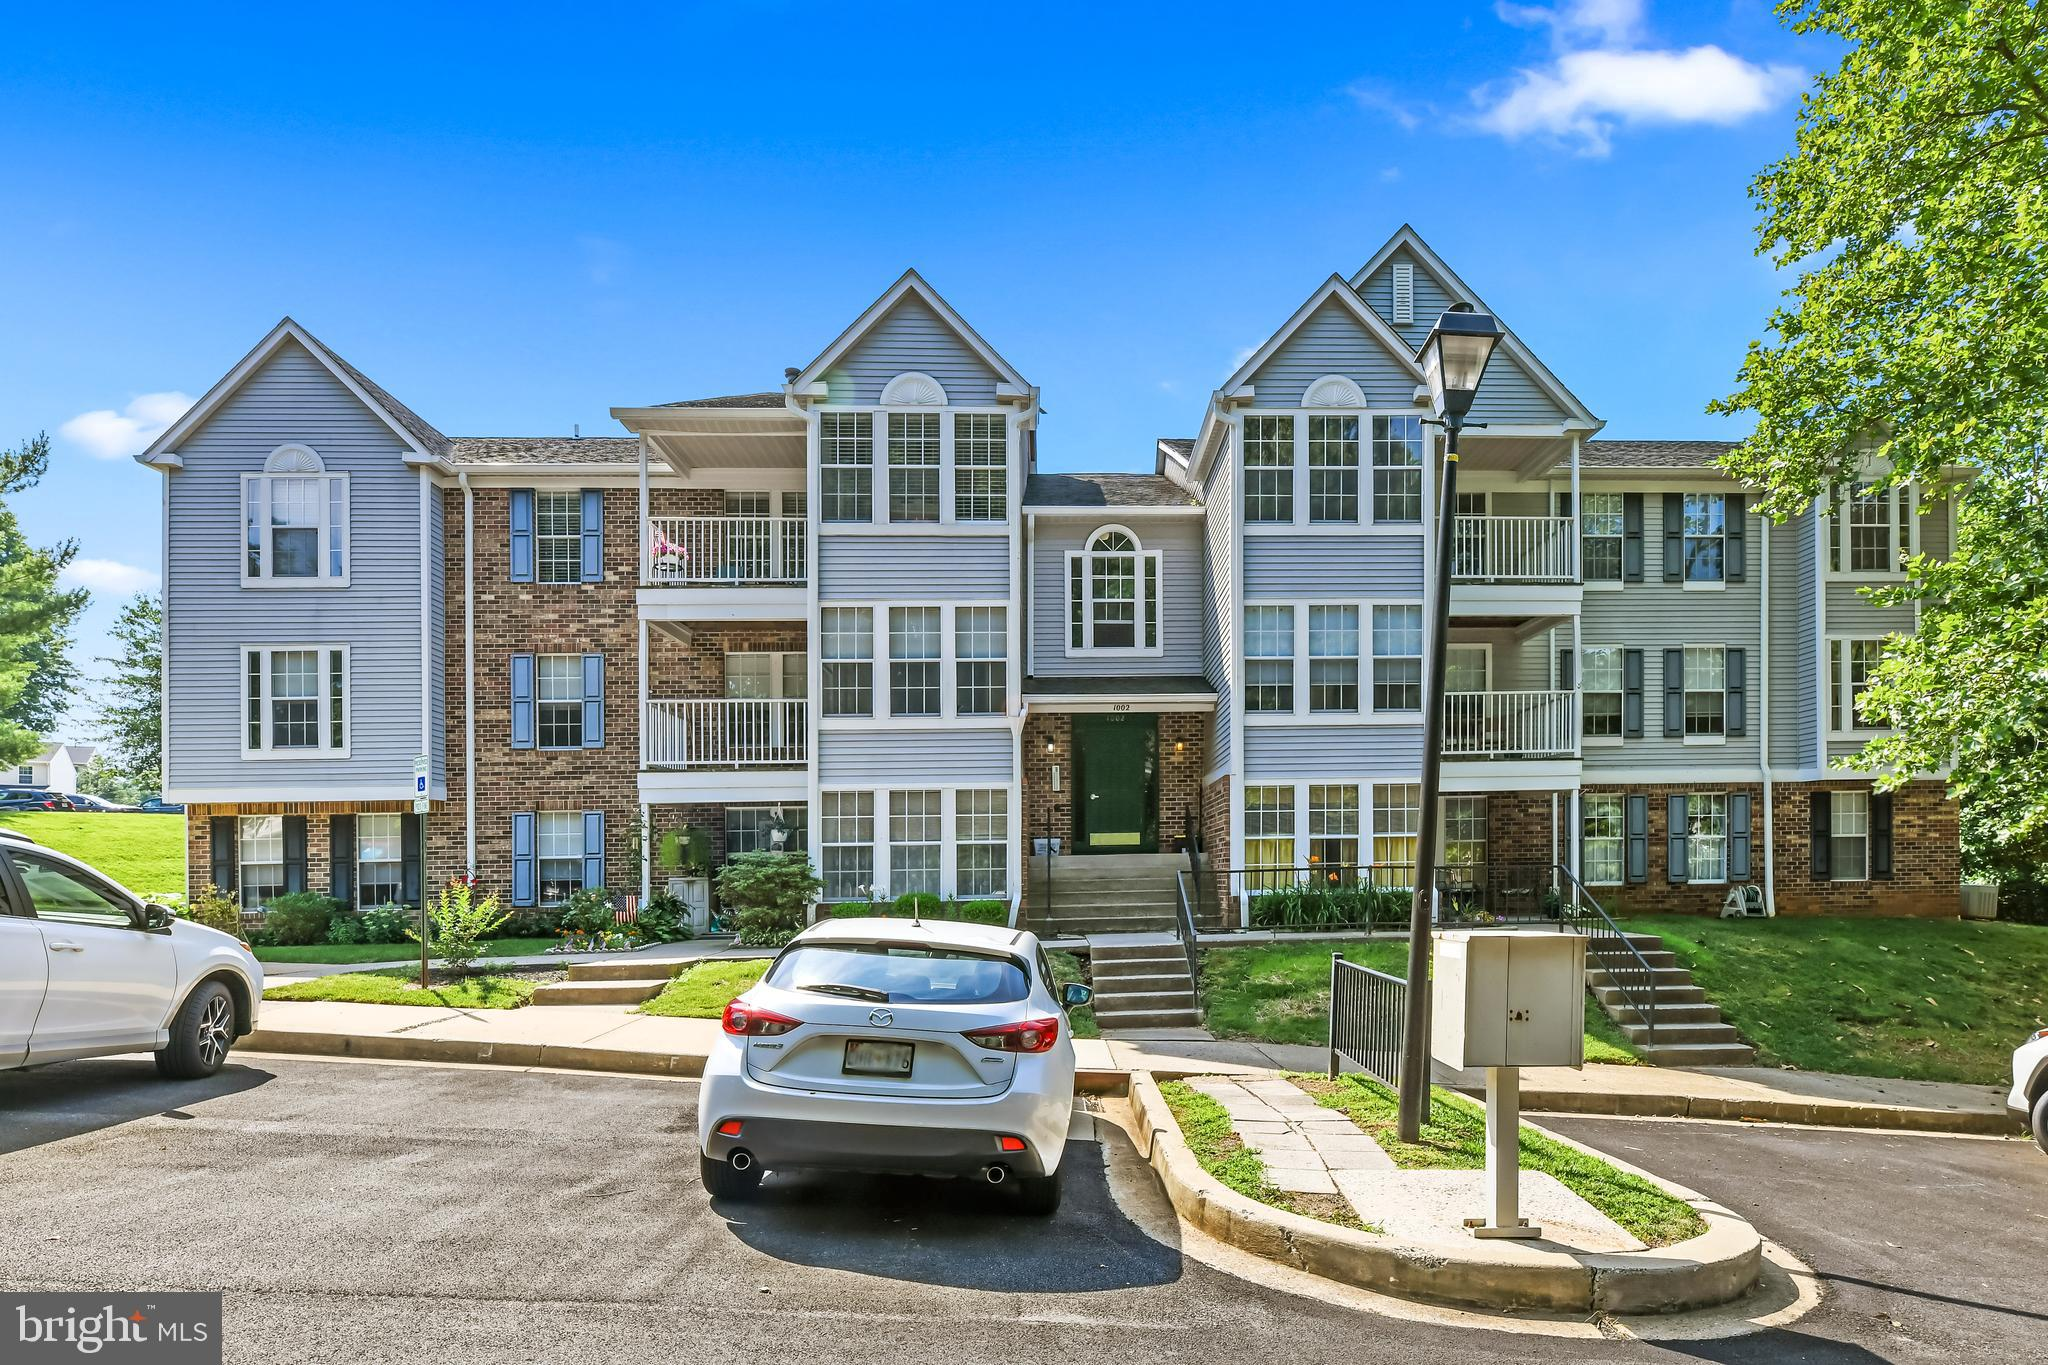 Lovely 2 bedroom 2 bath condo at  Brentwood Condo in  Bel Air, MD. Brand new vinyl flooring in the kitchen and brand new carpet in the main living areas and bedrooms. All new outlets and fresh paint throughout. Brand new stove, microwave and refrigerator. Will sell fast.